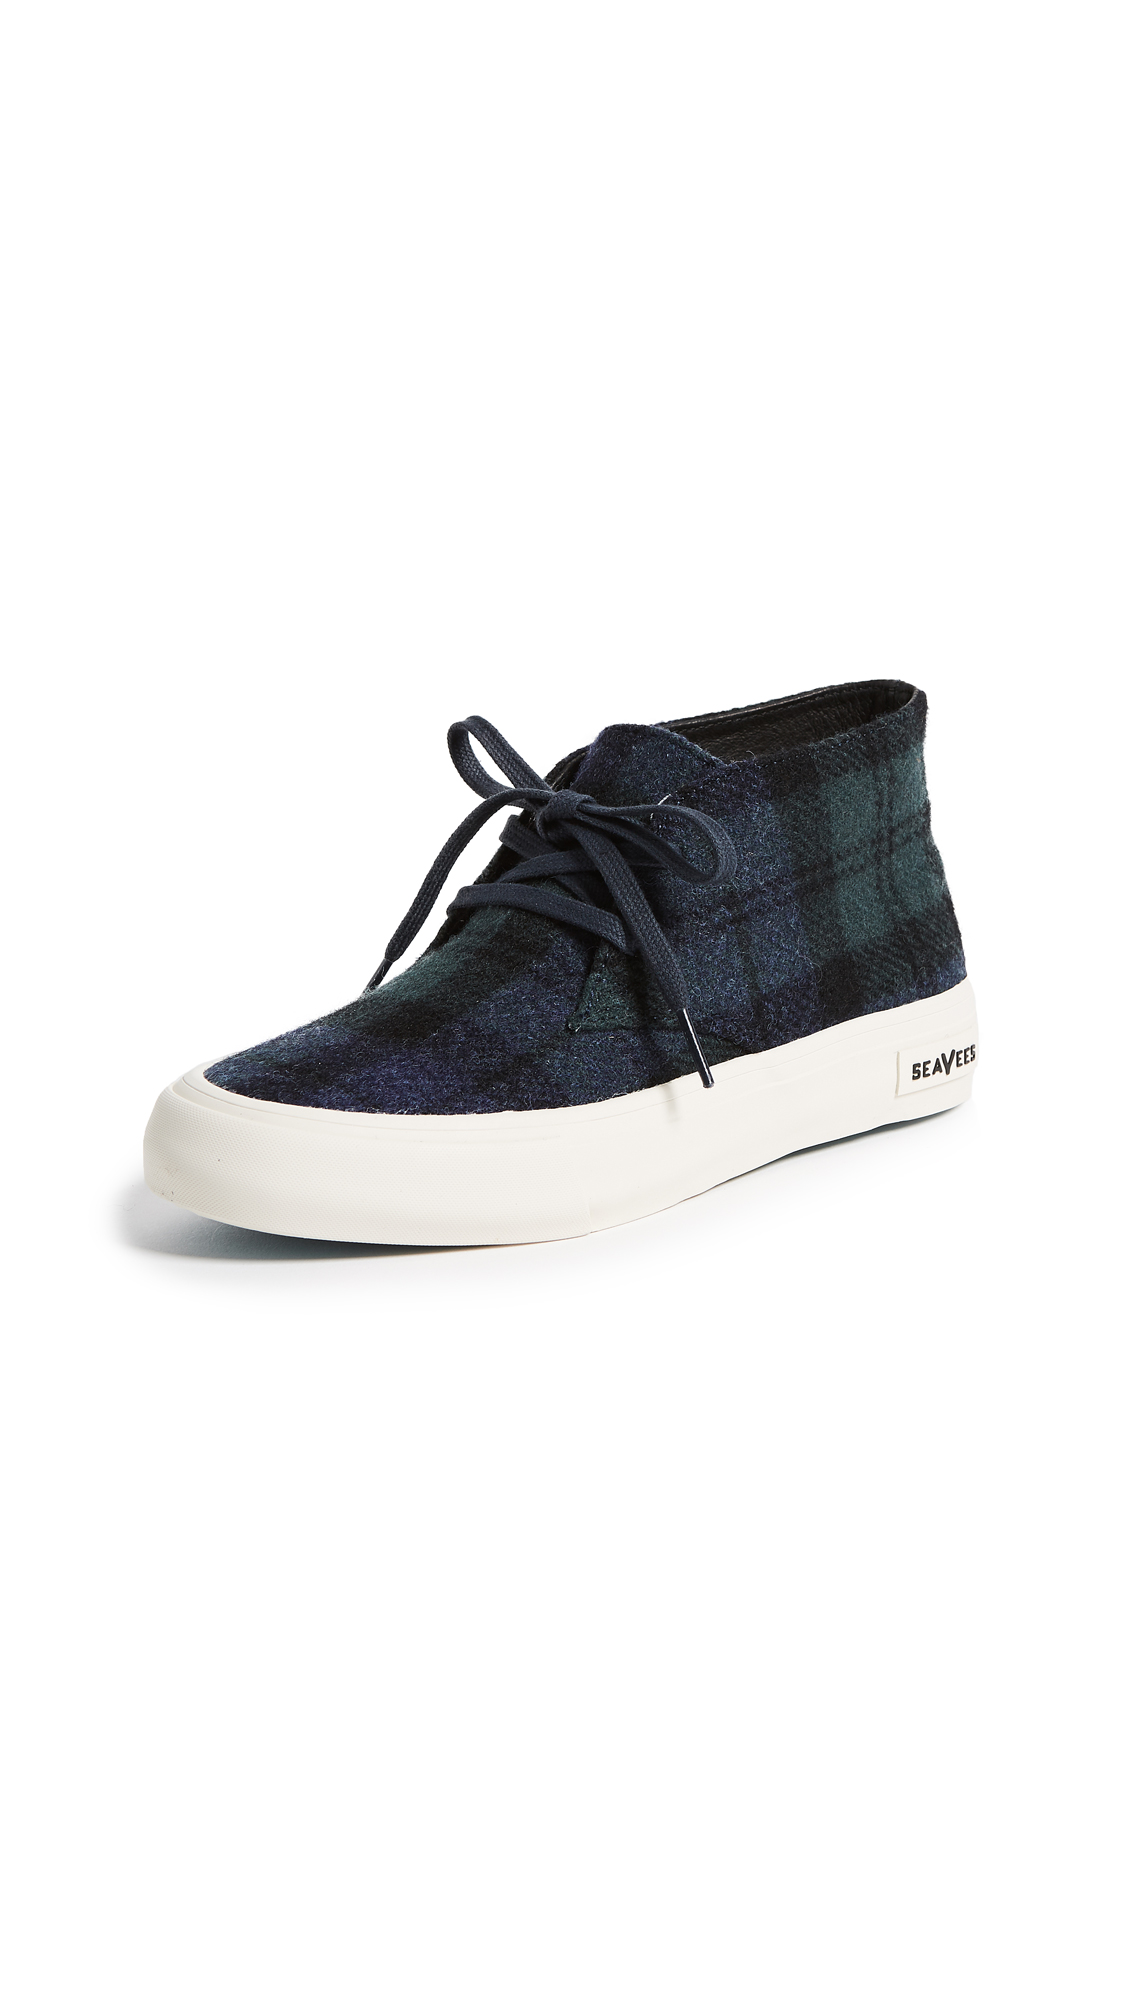 SeaVees Maslon Desert Boot Sneakers - Blackwatch Plaid